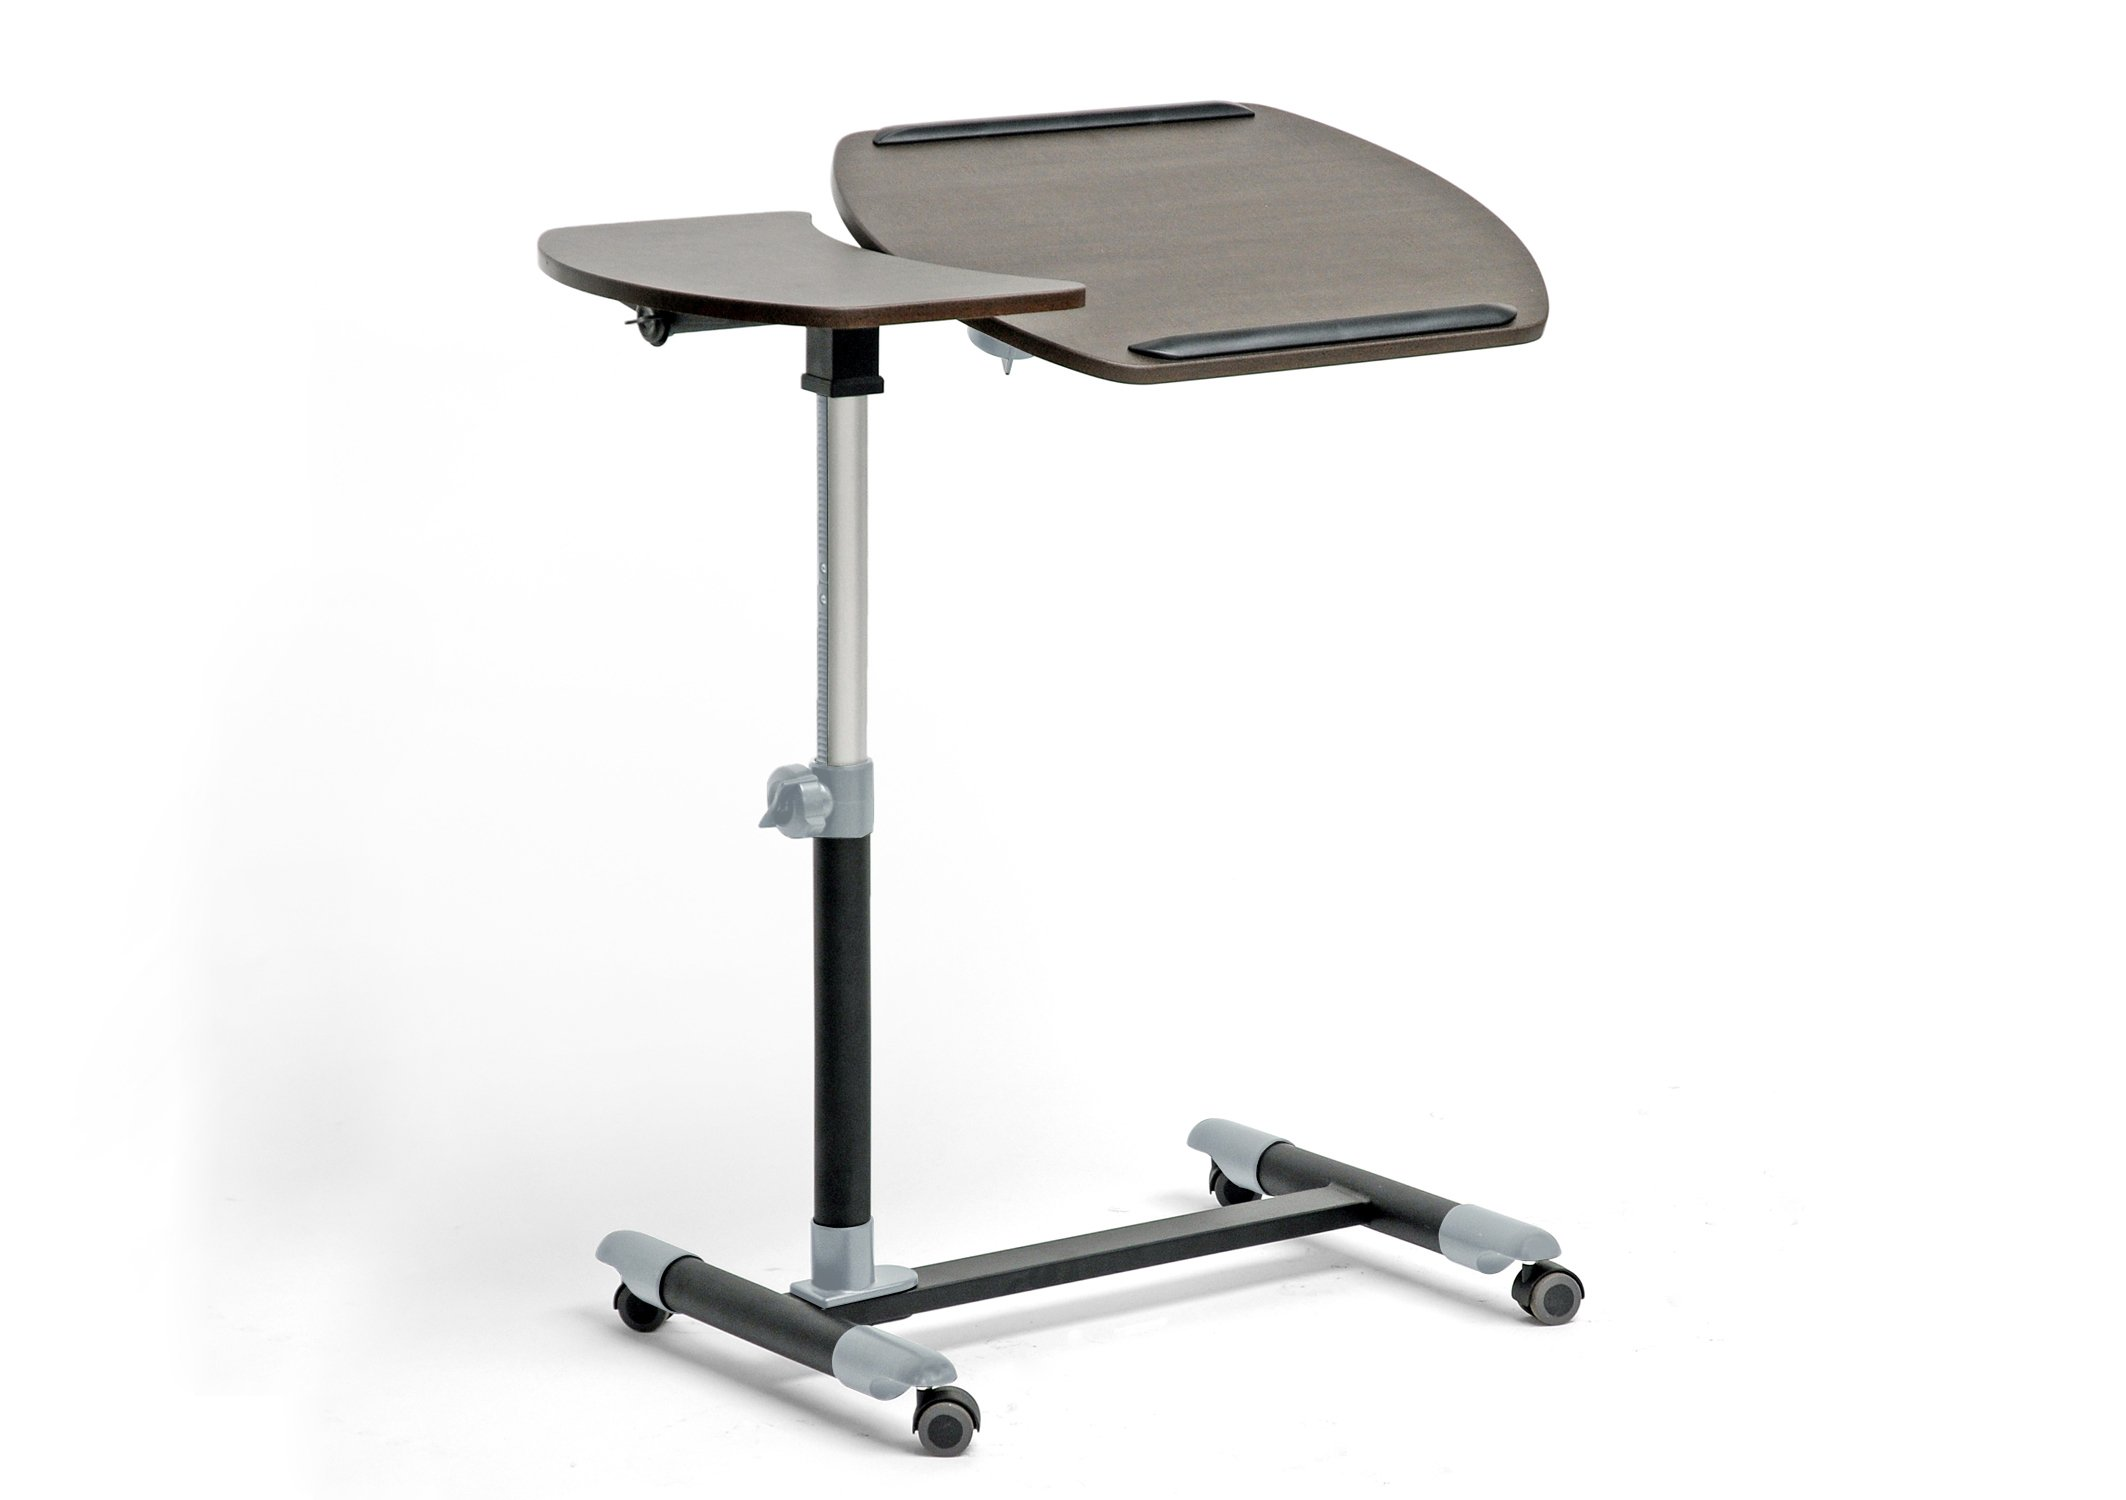 Baxton Studio Wheeled Laptop Tray Table with Tilt Control, Olsen Brown by Baxton Studio